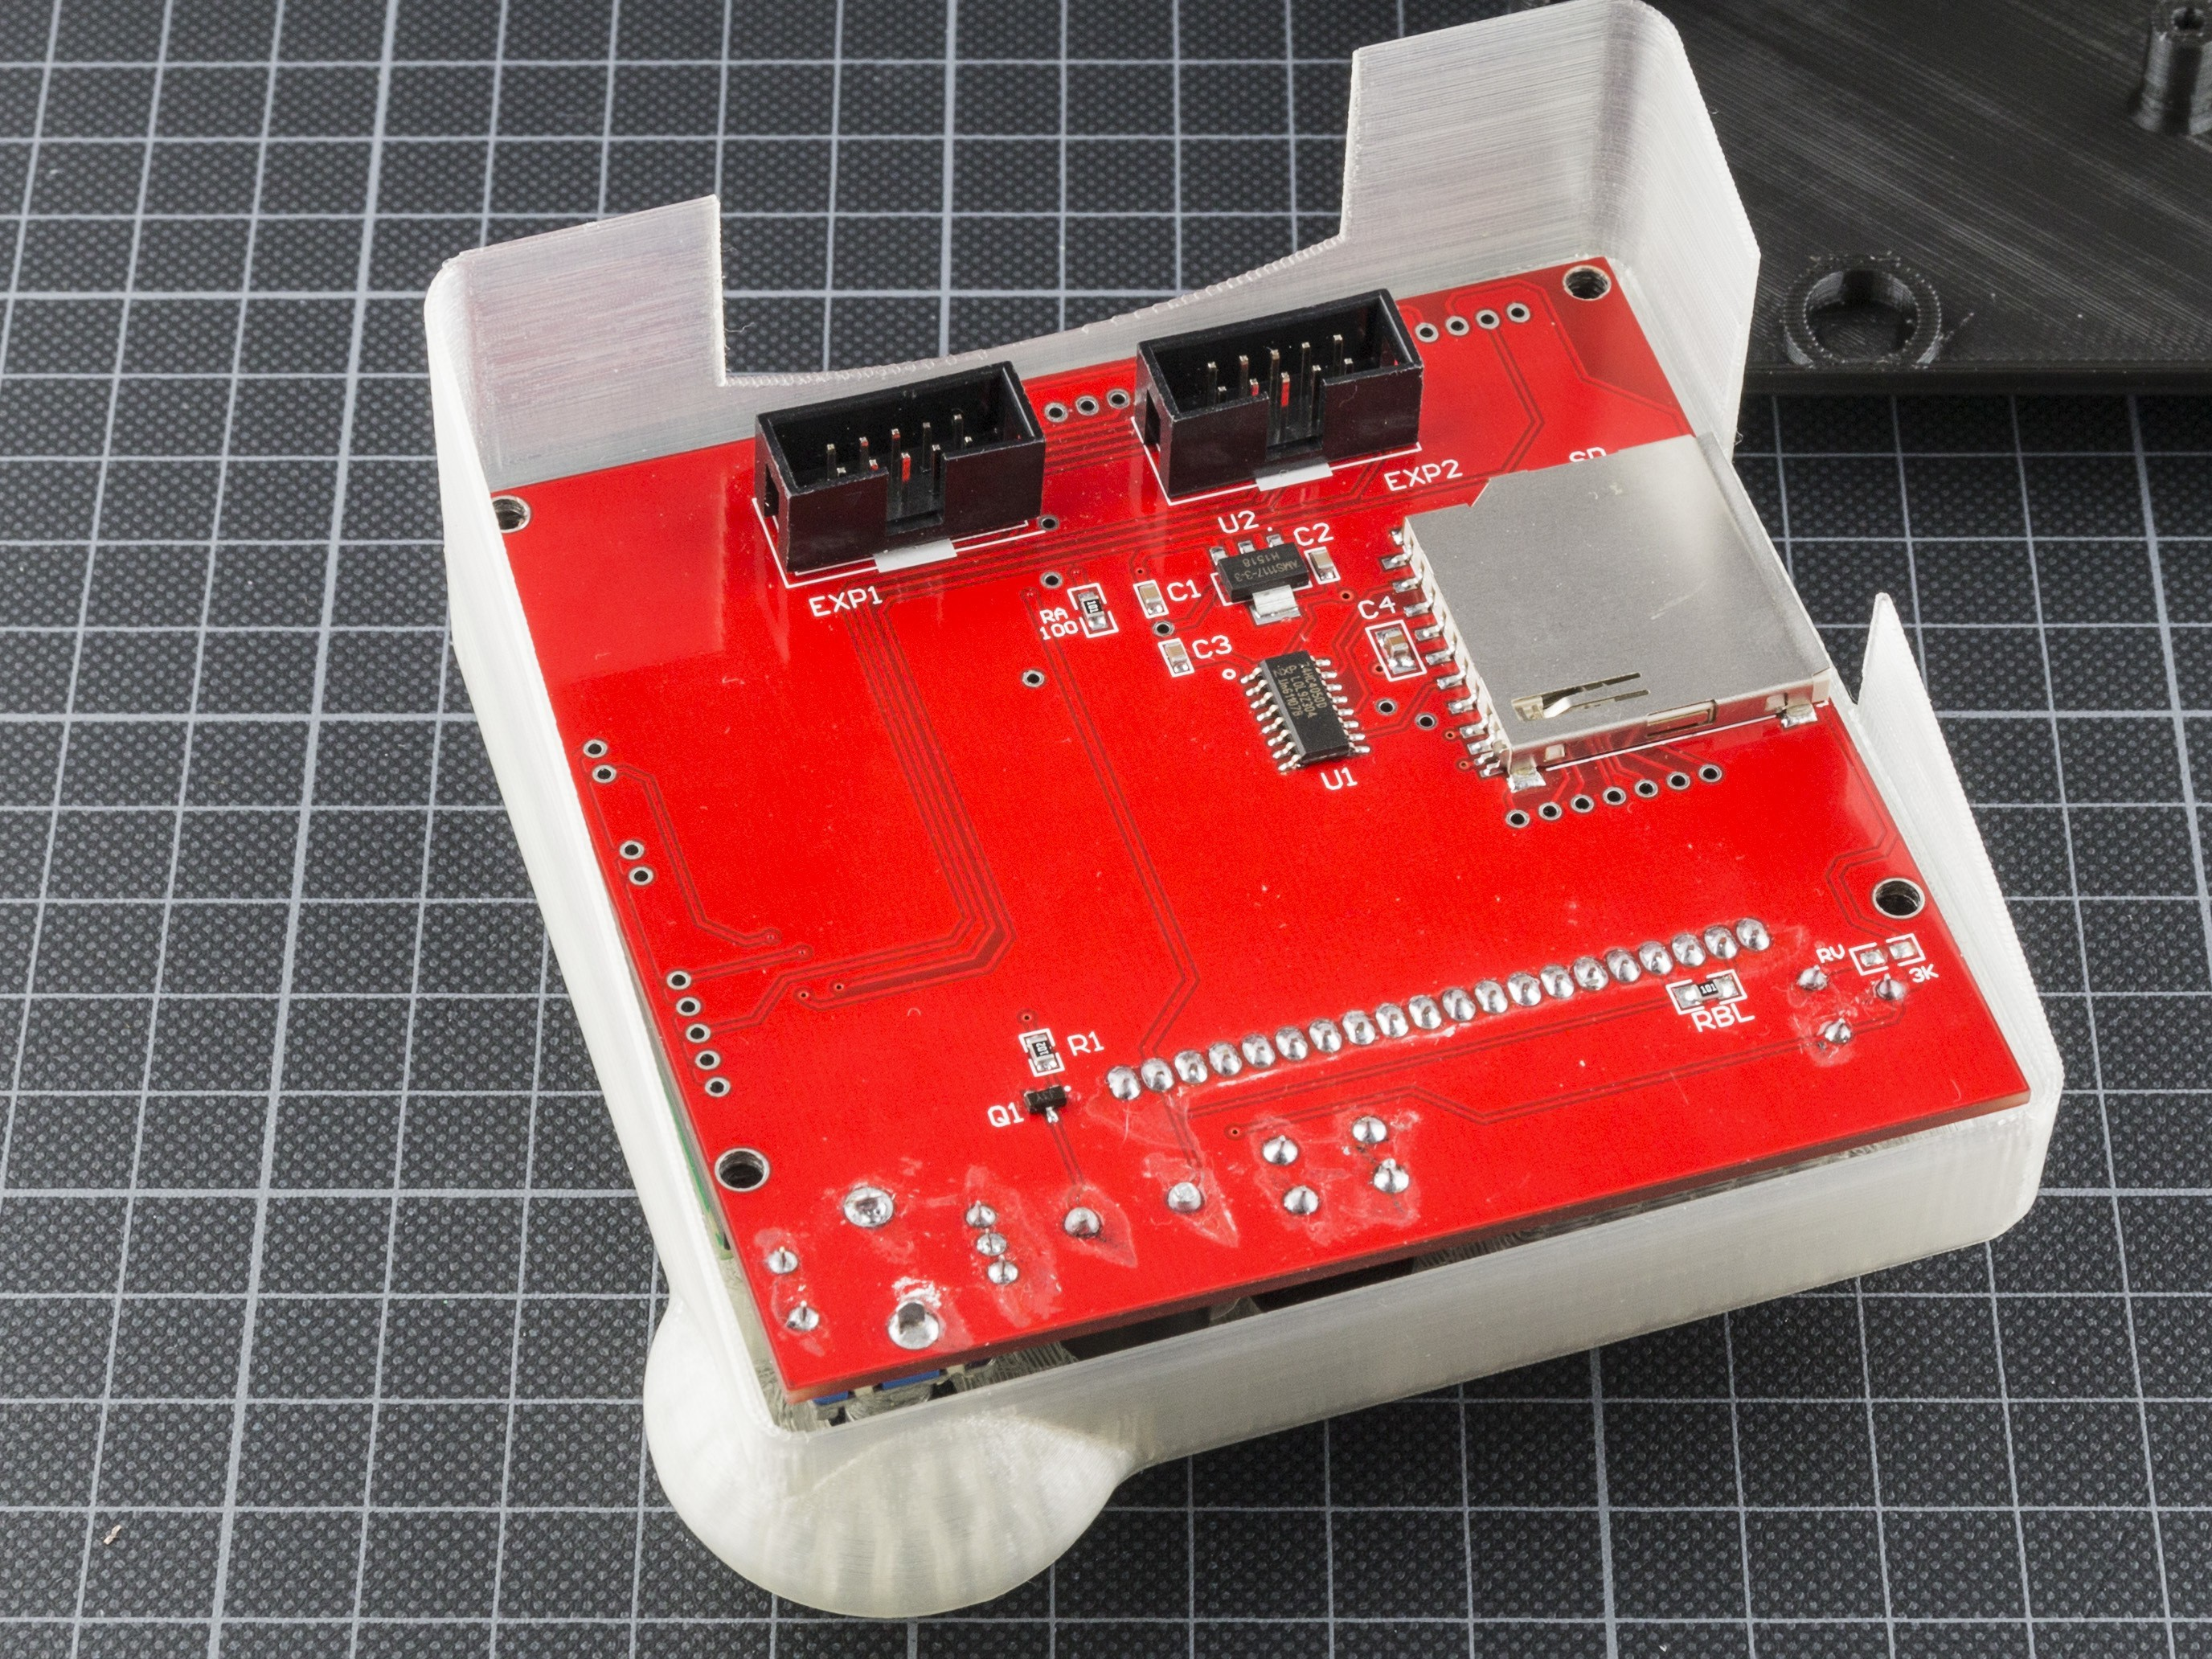 step4_IMG_1733.jpg Download free STL file RepRapDiscount Full Graphic Smart Controller Case • 3D printer template, MightyNozzle